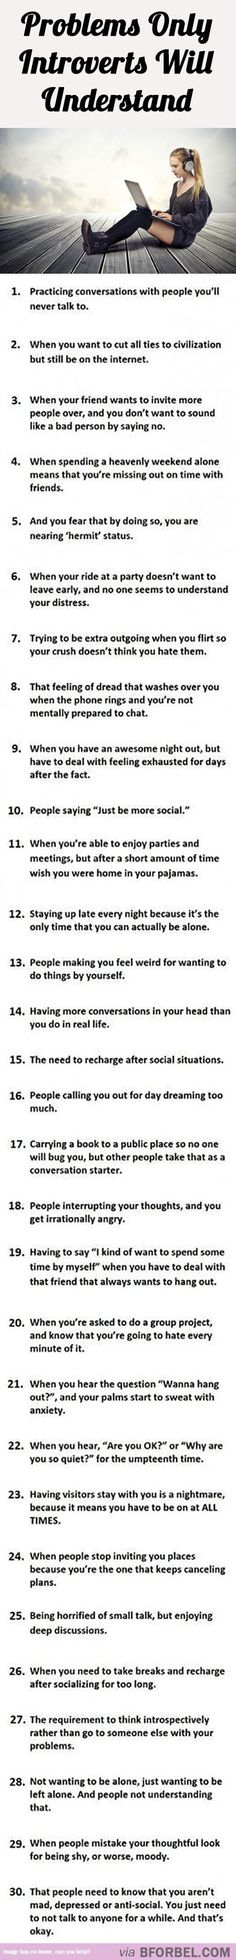 Oh man! So many of these apply to me! And it's getting worse as I get older!